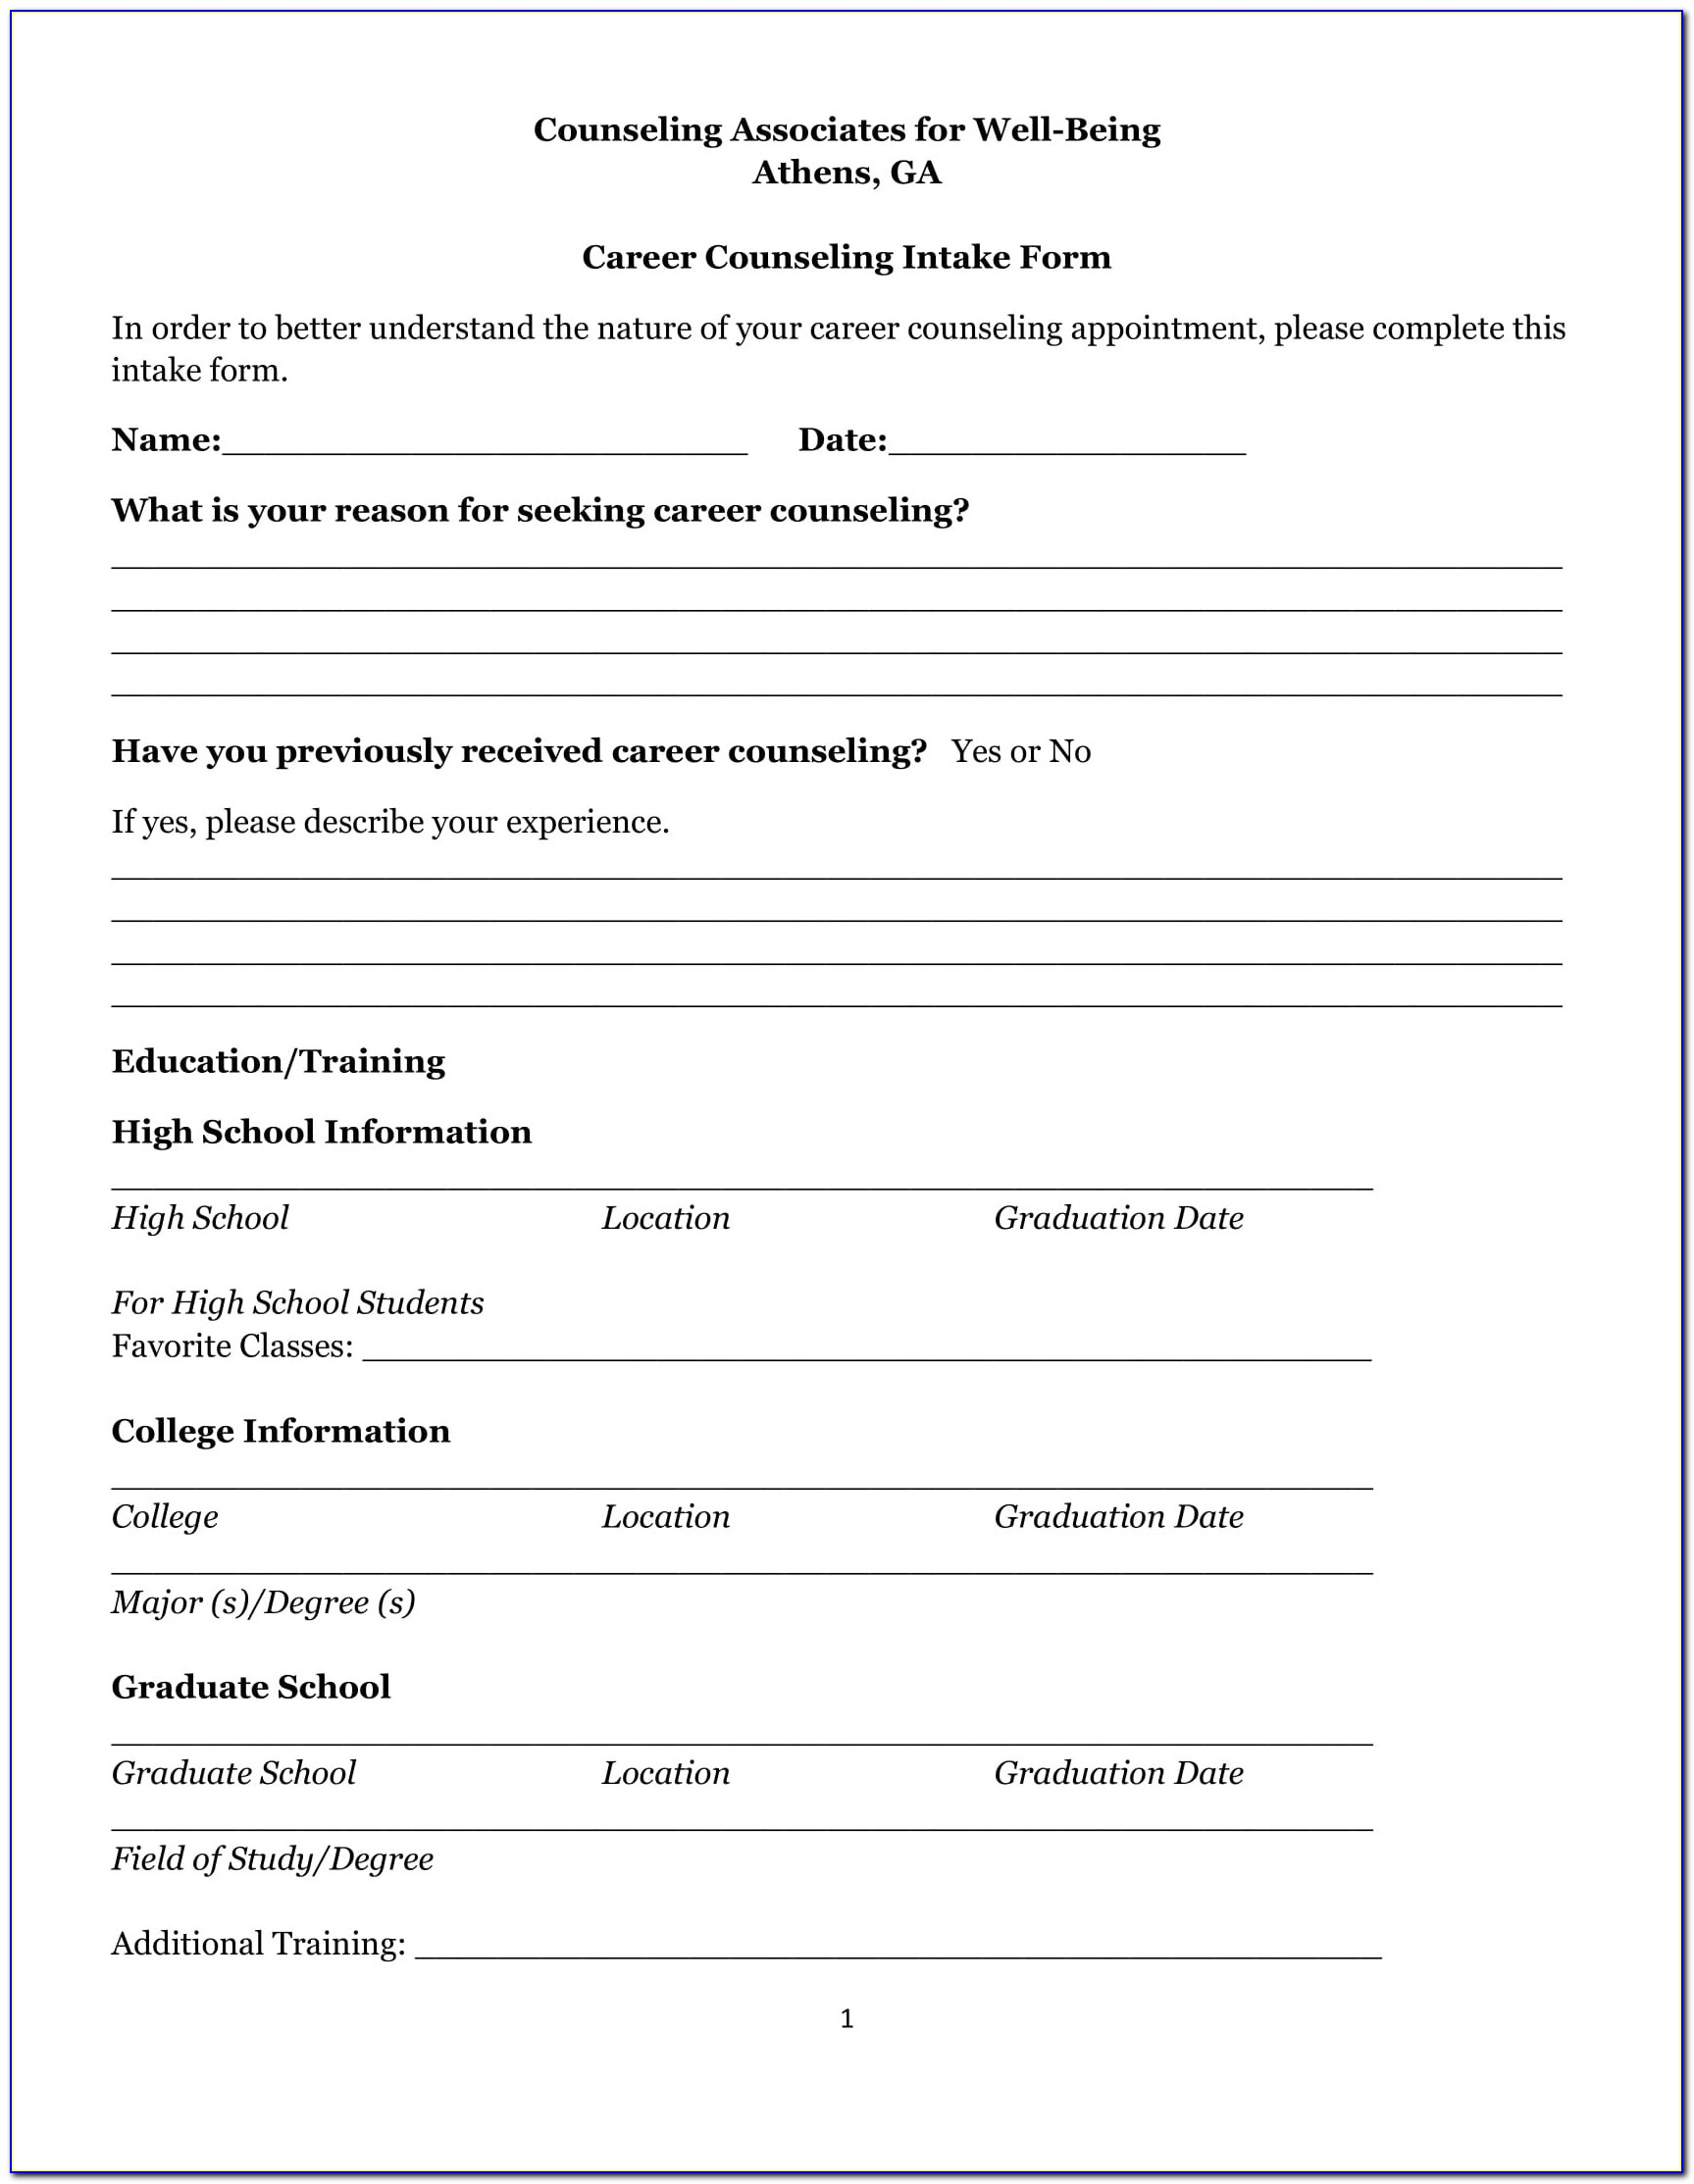 Premarital Counseling Certificate Of Completion Template Unique 21 Counseling Intake Forms Pdf Doc